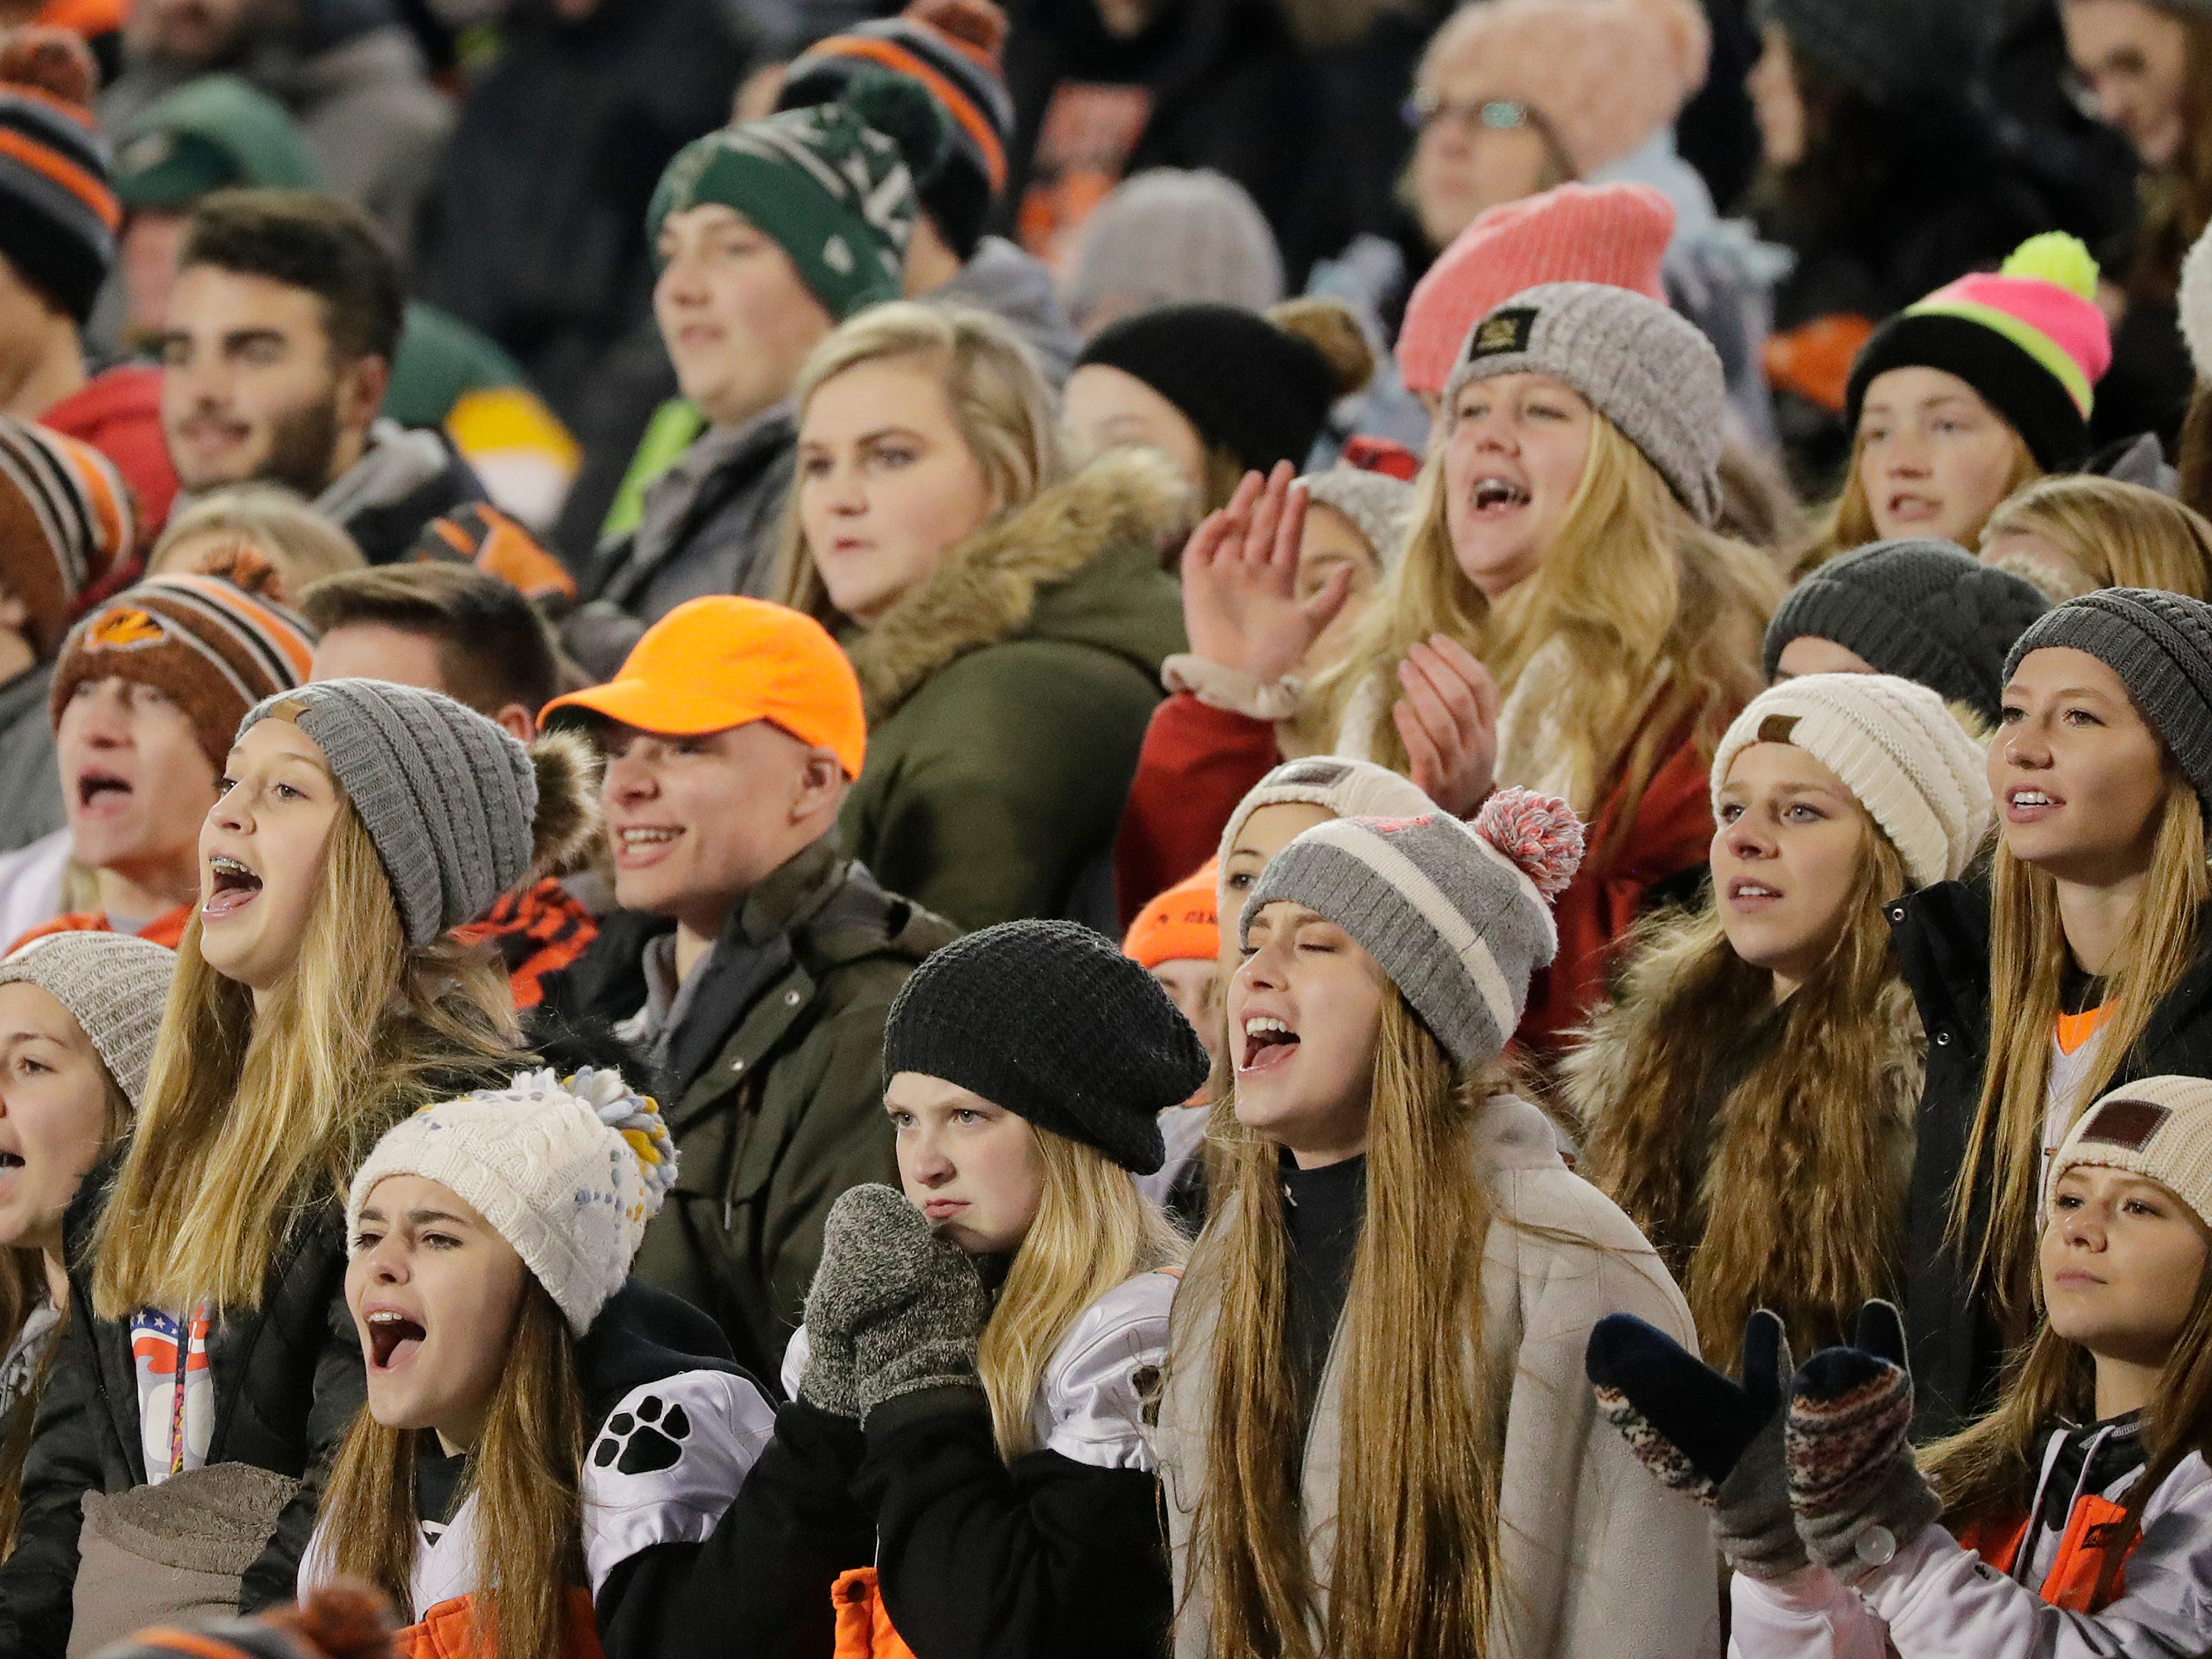 Stratford fans cheer during the second half against St Mary's Springs Academy in the WIAA Division 5 championship game at Camp Randall Stadium on Thursday, November 15, 2018 in Madison, Wis.